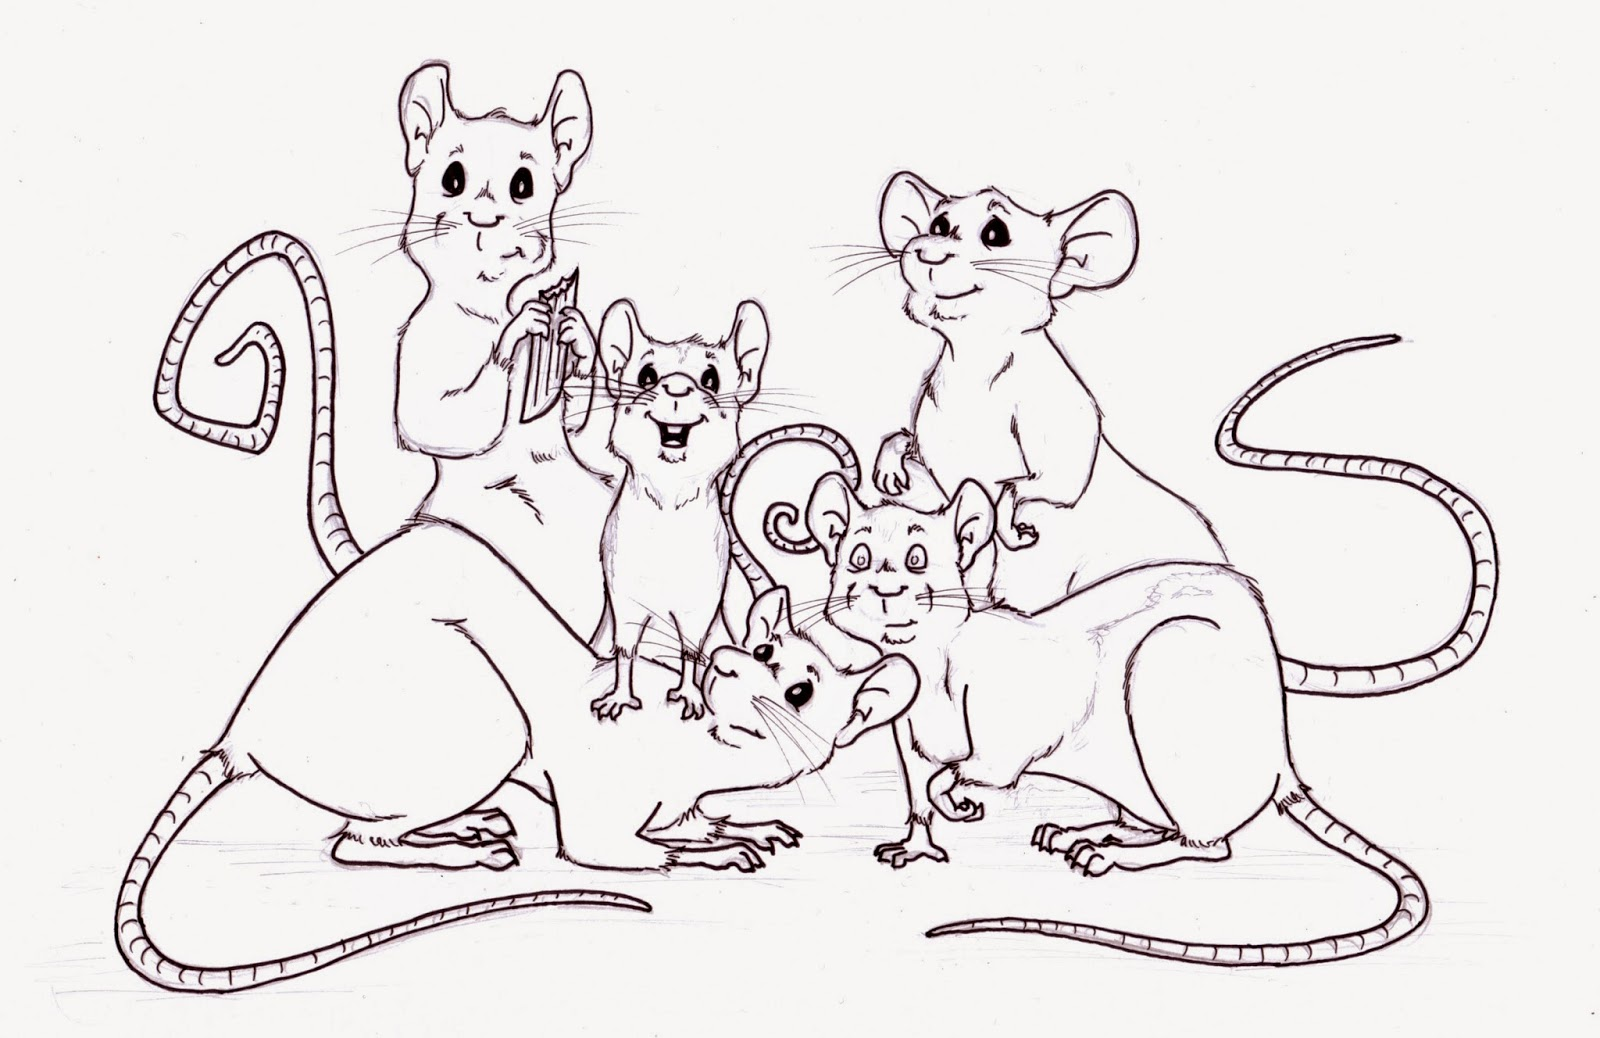 Dumbo Rat Drawing i am Currently Open For